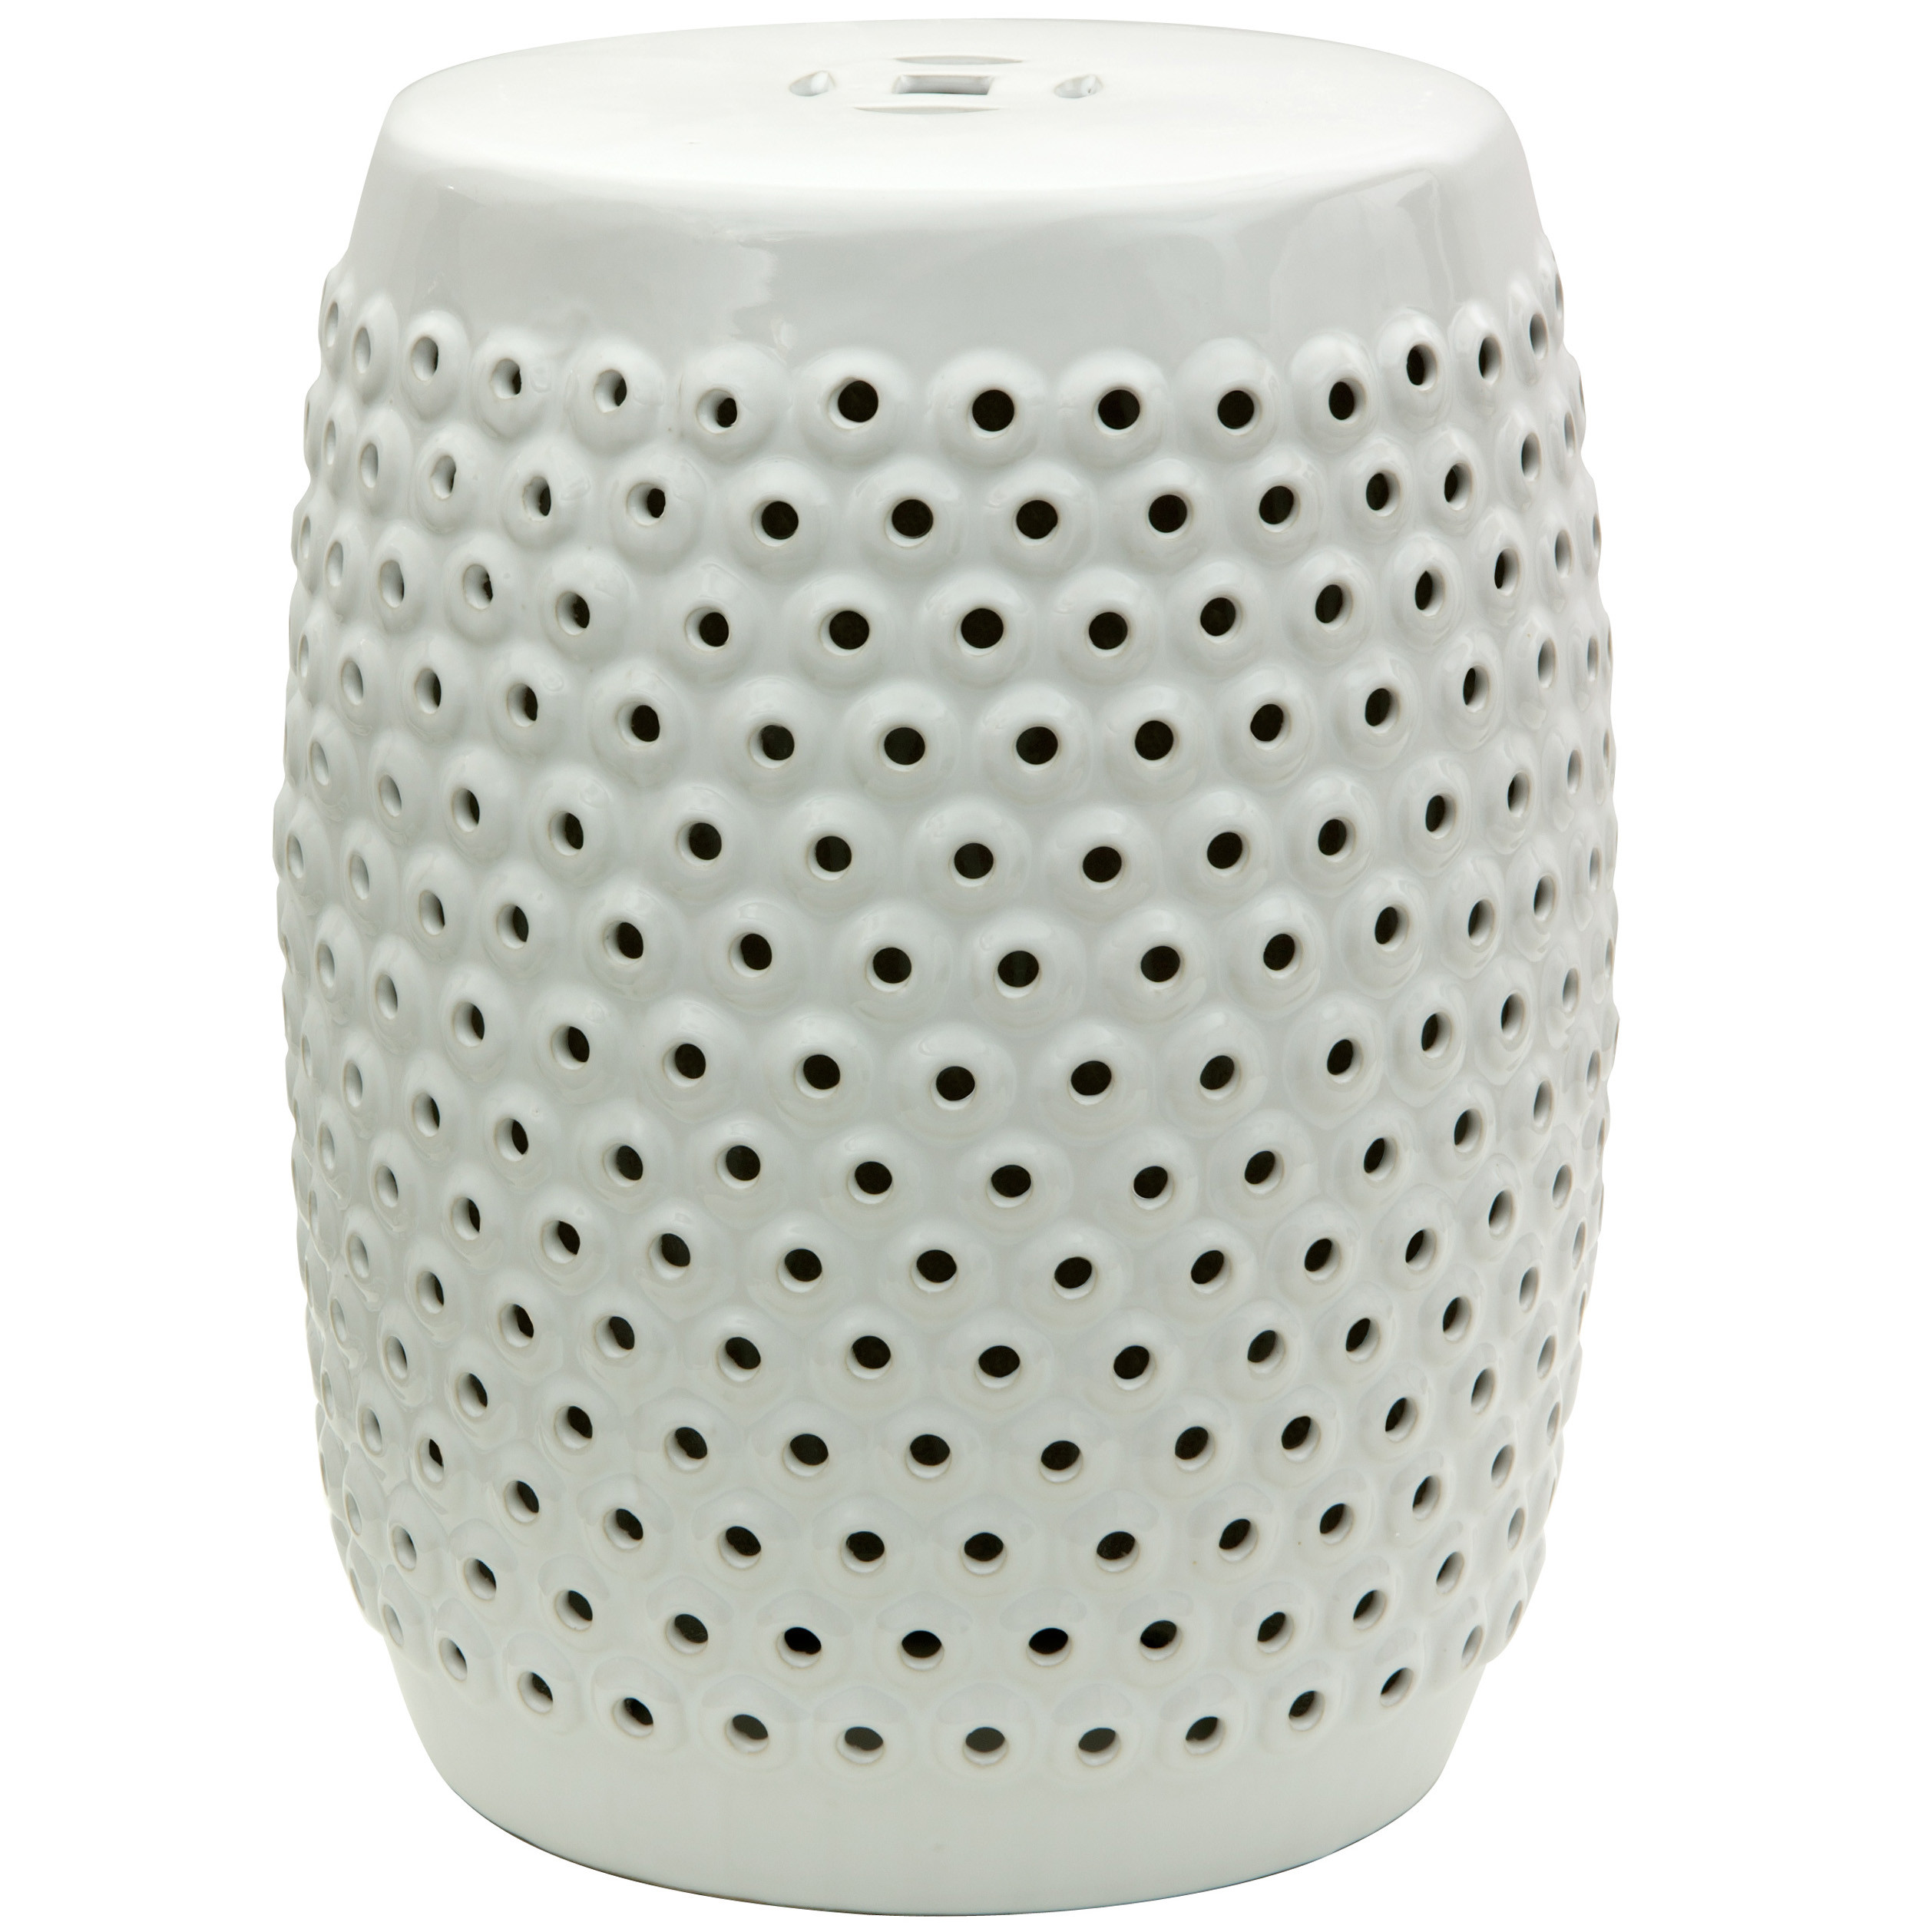 Attractive garden stool for decorating interior ideas with white garden stool